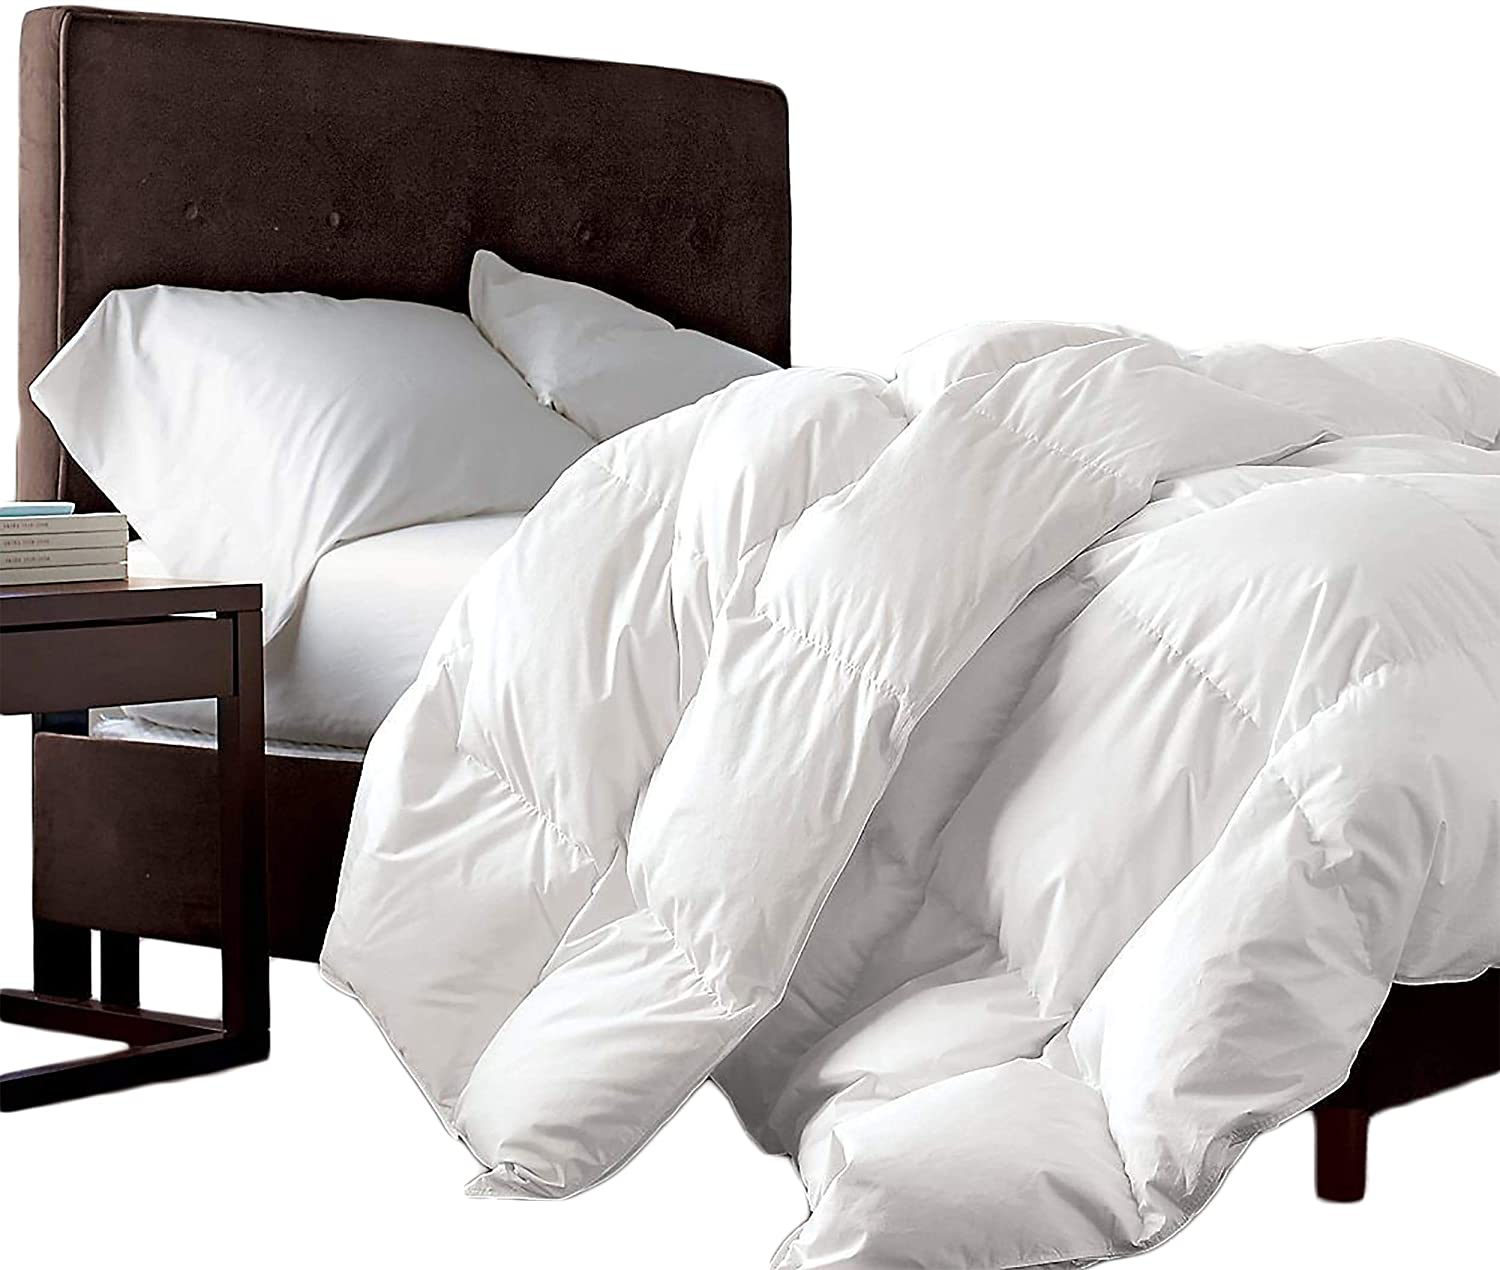 Luxurious Queen Size Siberian Goose Down Comforter 100% Egyptian Cotton 1200 Thread Count 1200TC - Baffle Box Design - 48oz Fill Weight - Full/Queen Duvet - Solid White: Kitchen & Dining